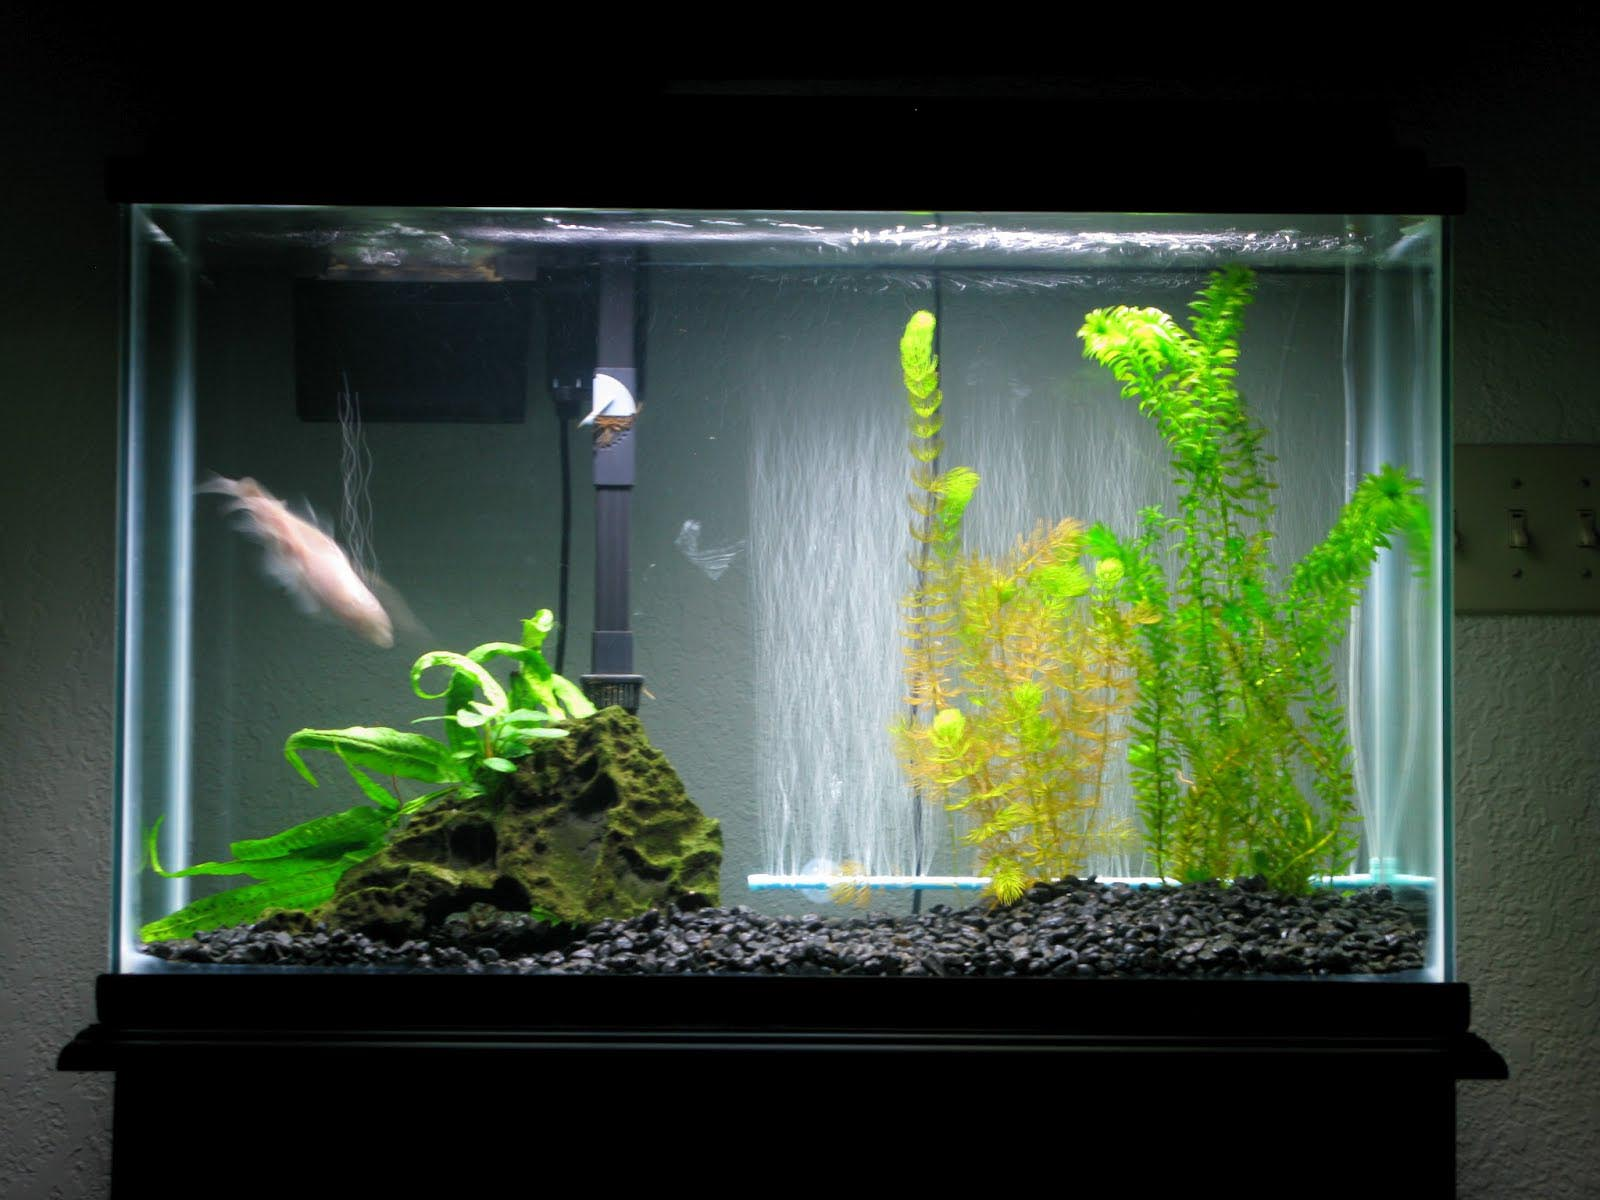 Best aquarium for betta fish aquarium design ideas for Betta fish tank ideas